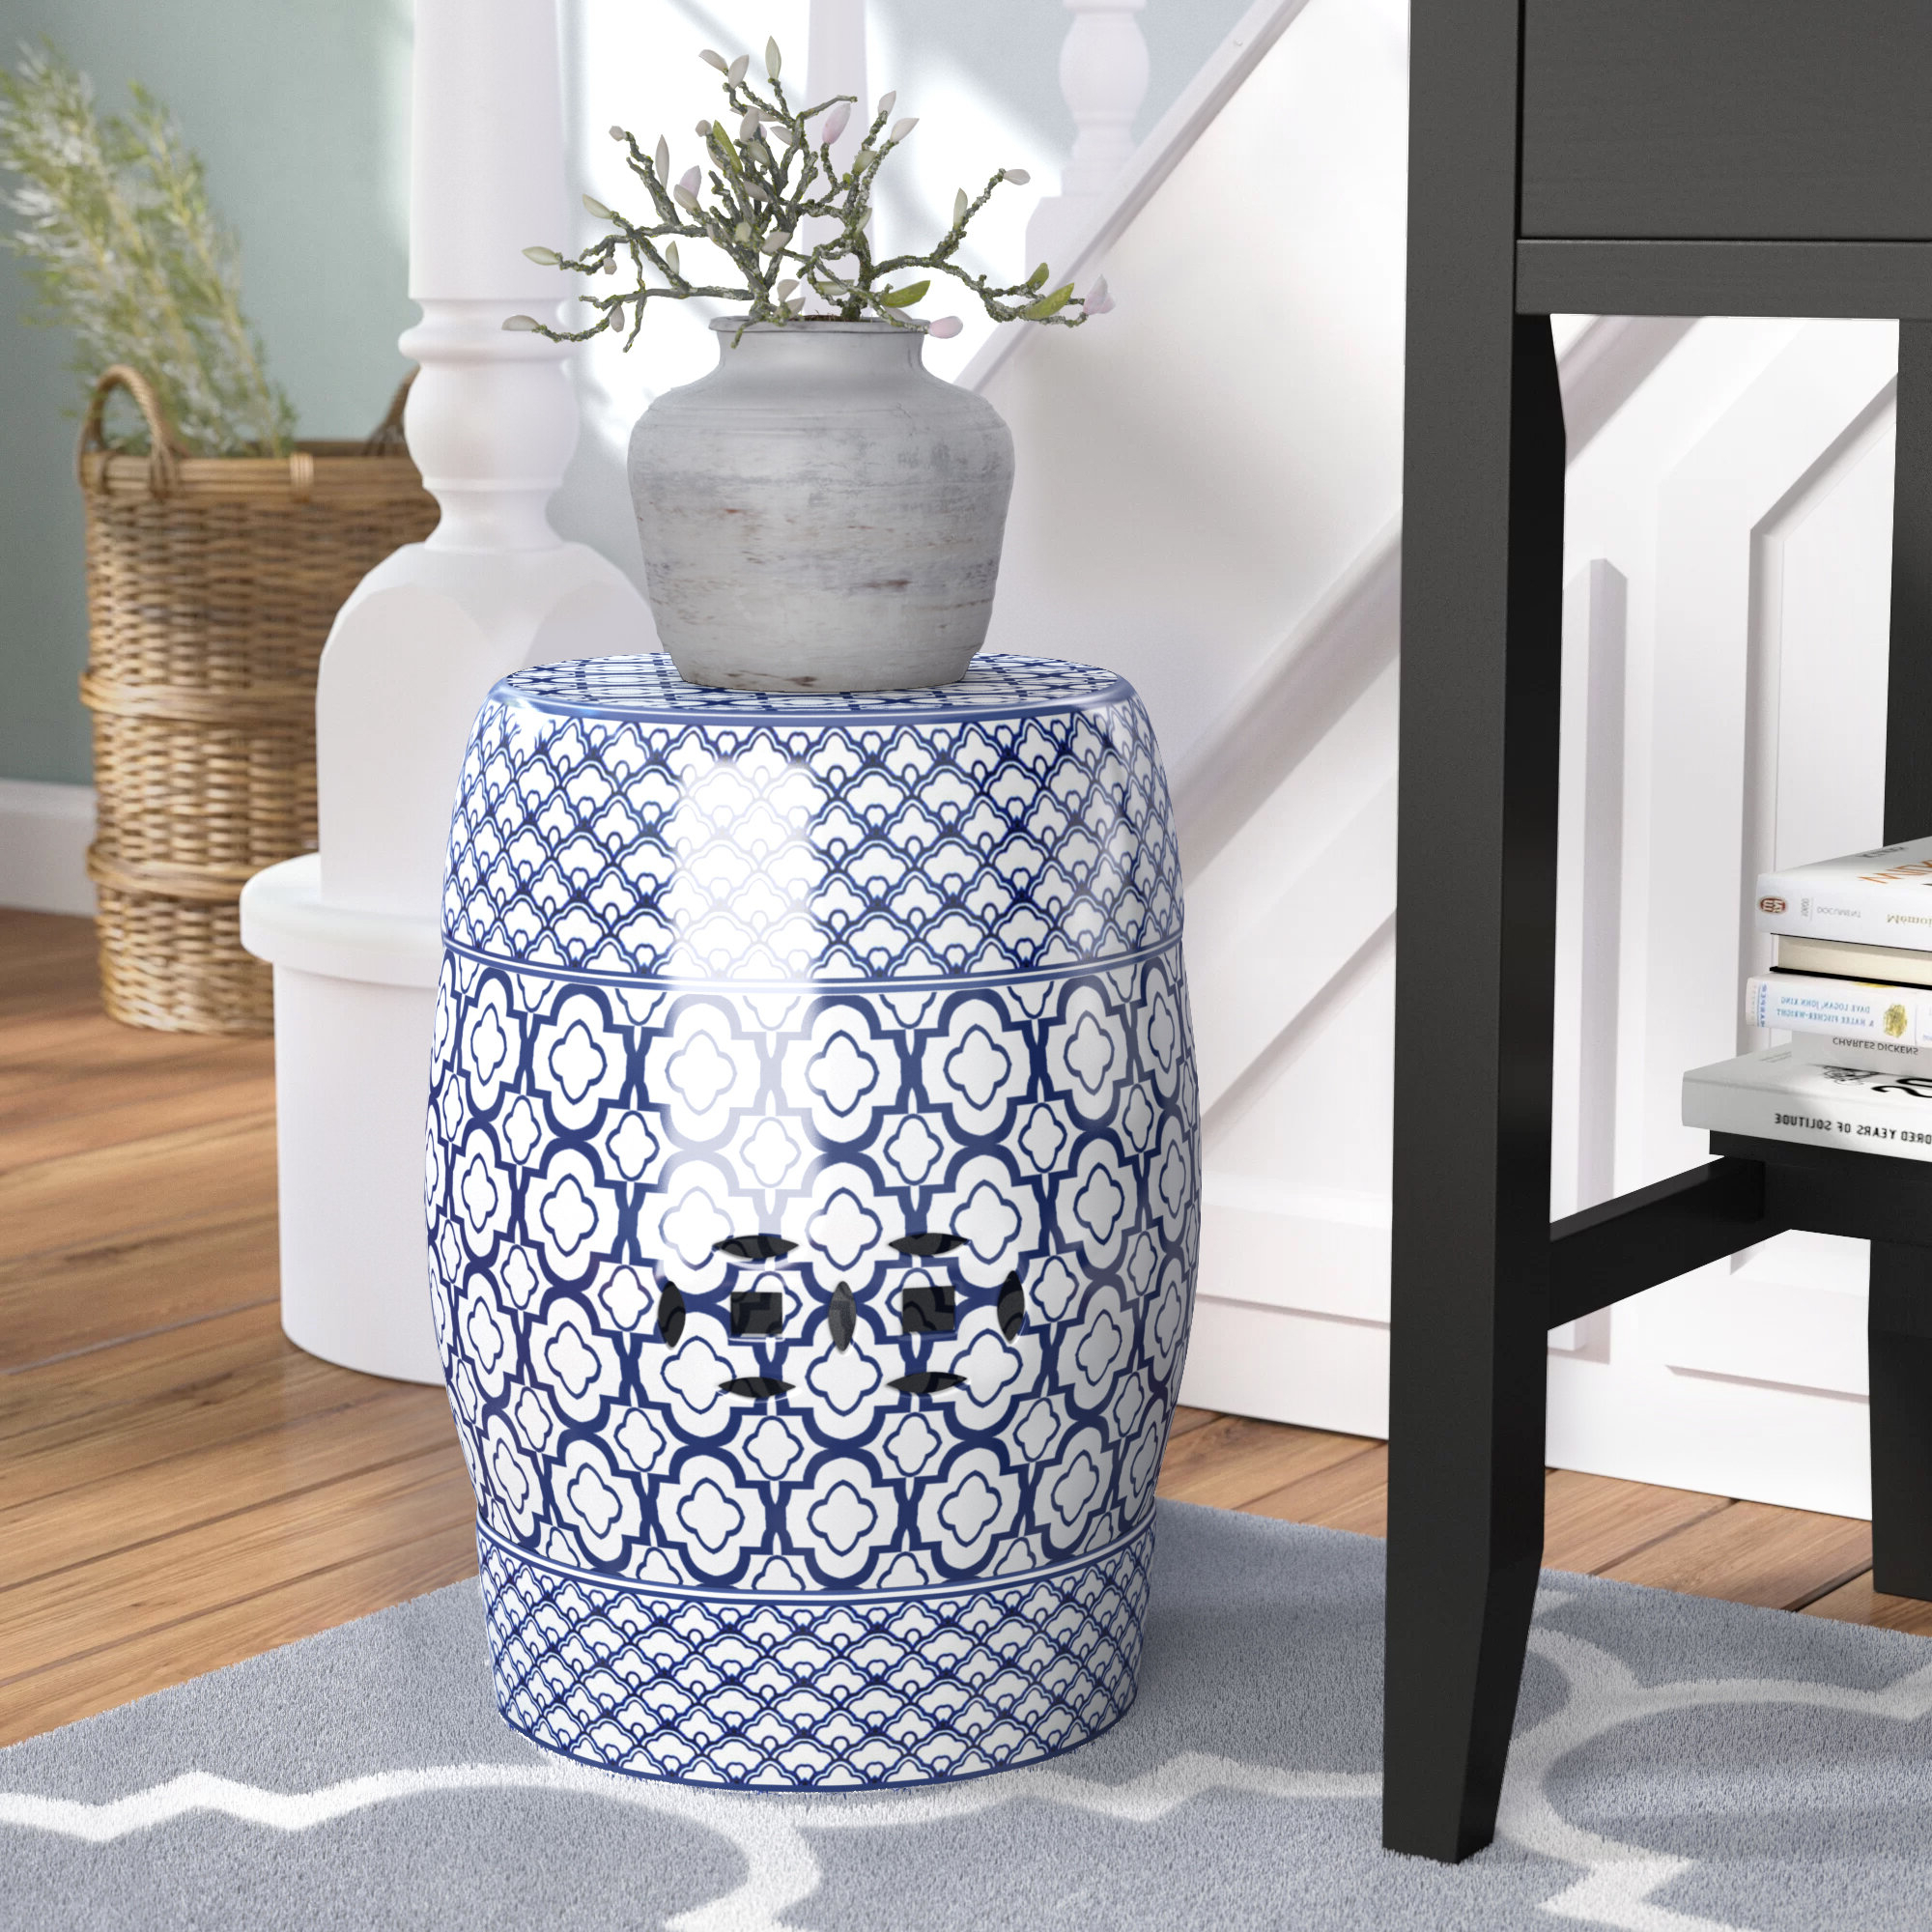 Wayfair With Regard To Williar Cherry Blossom Ceramic Garden Stools (View 8 of 30)